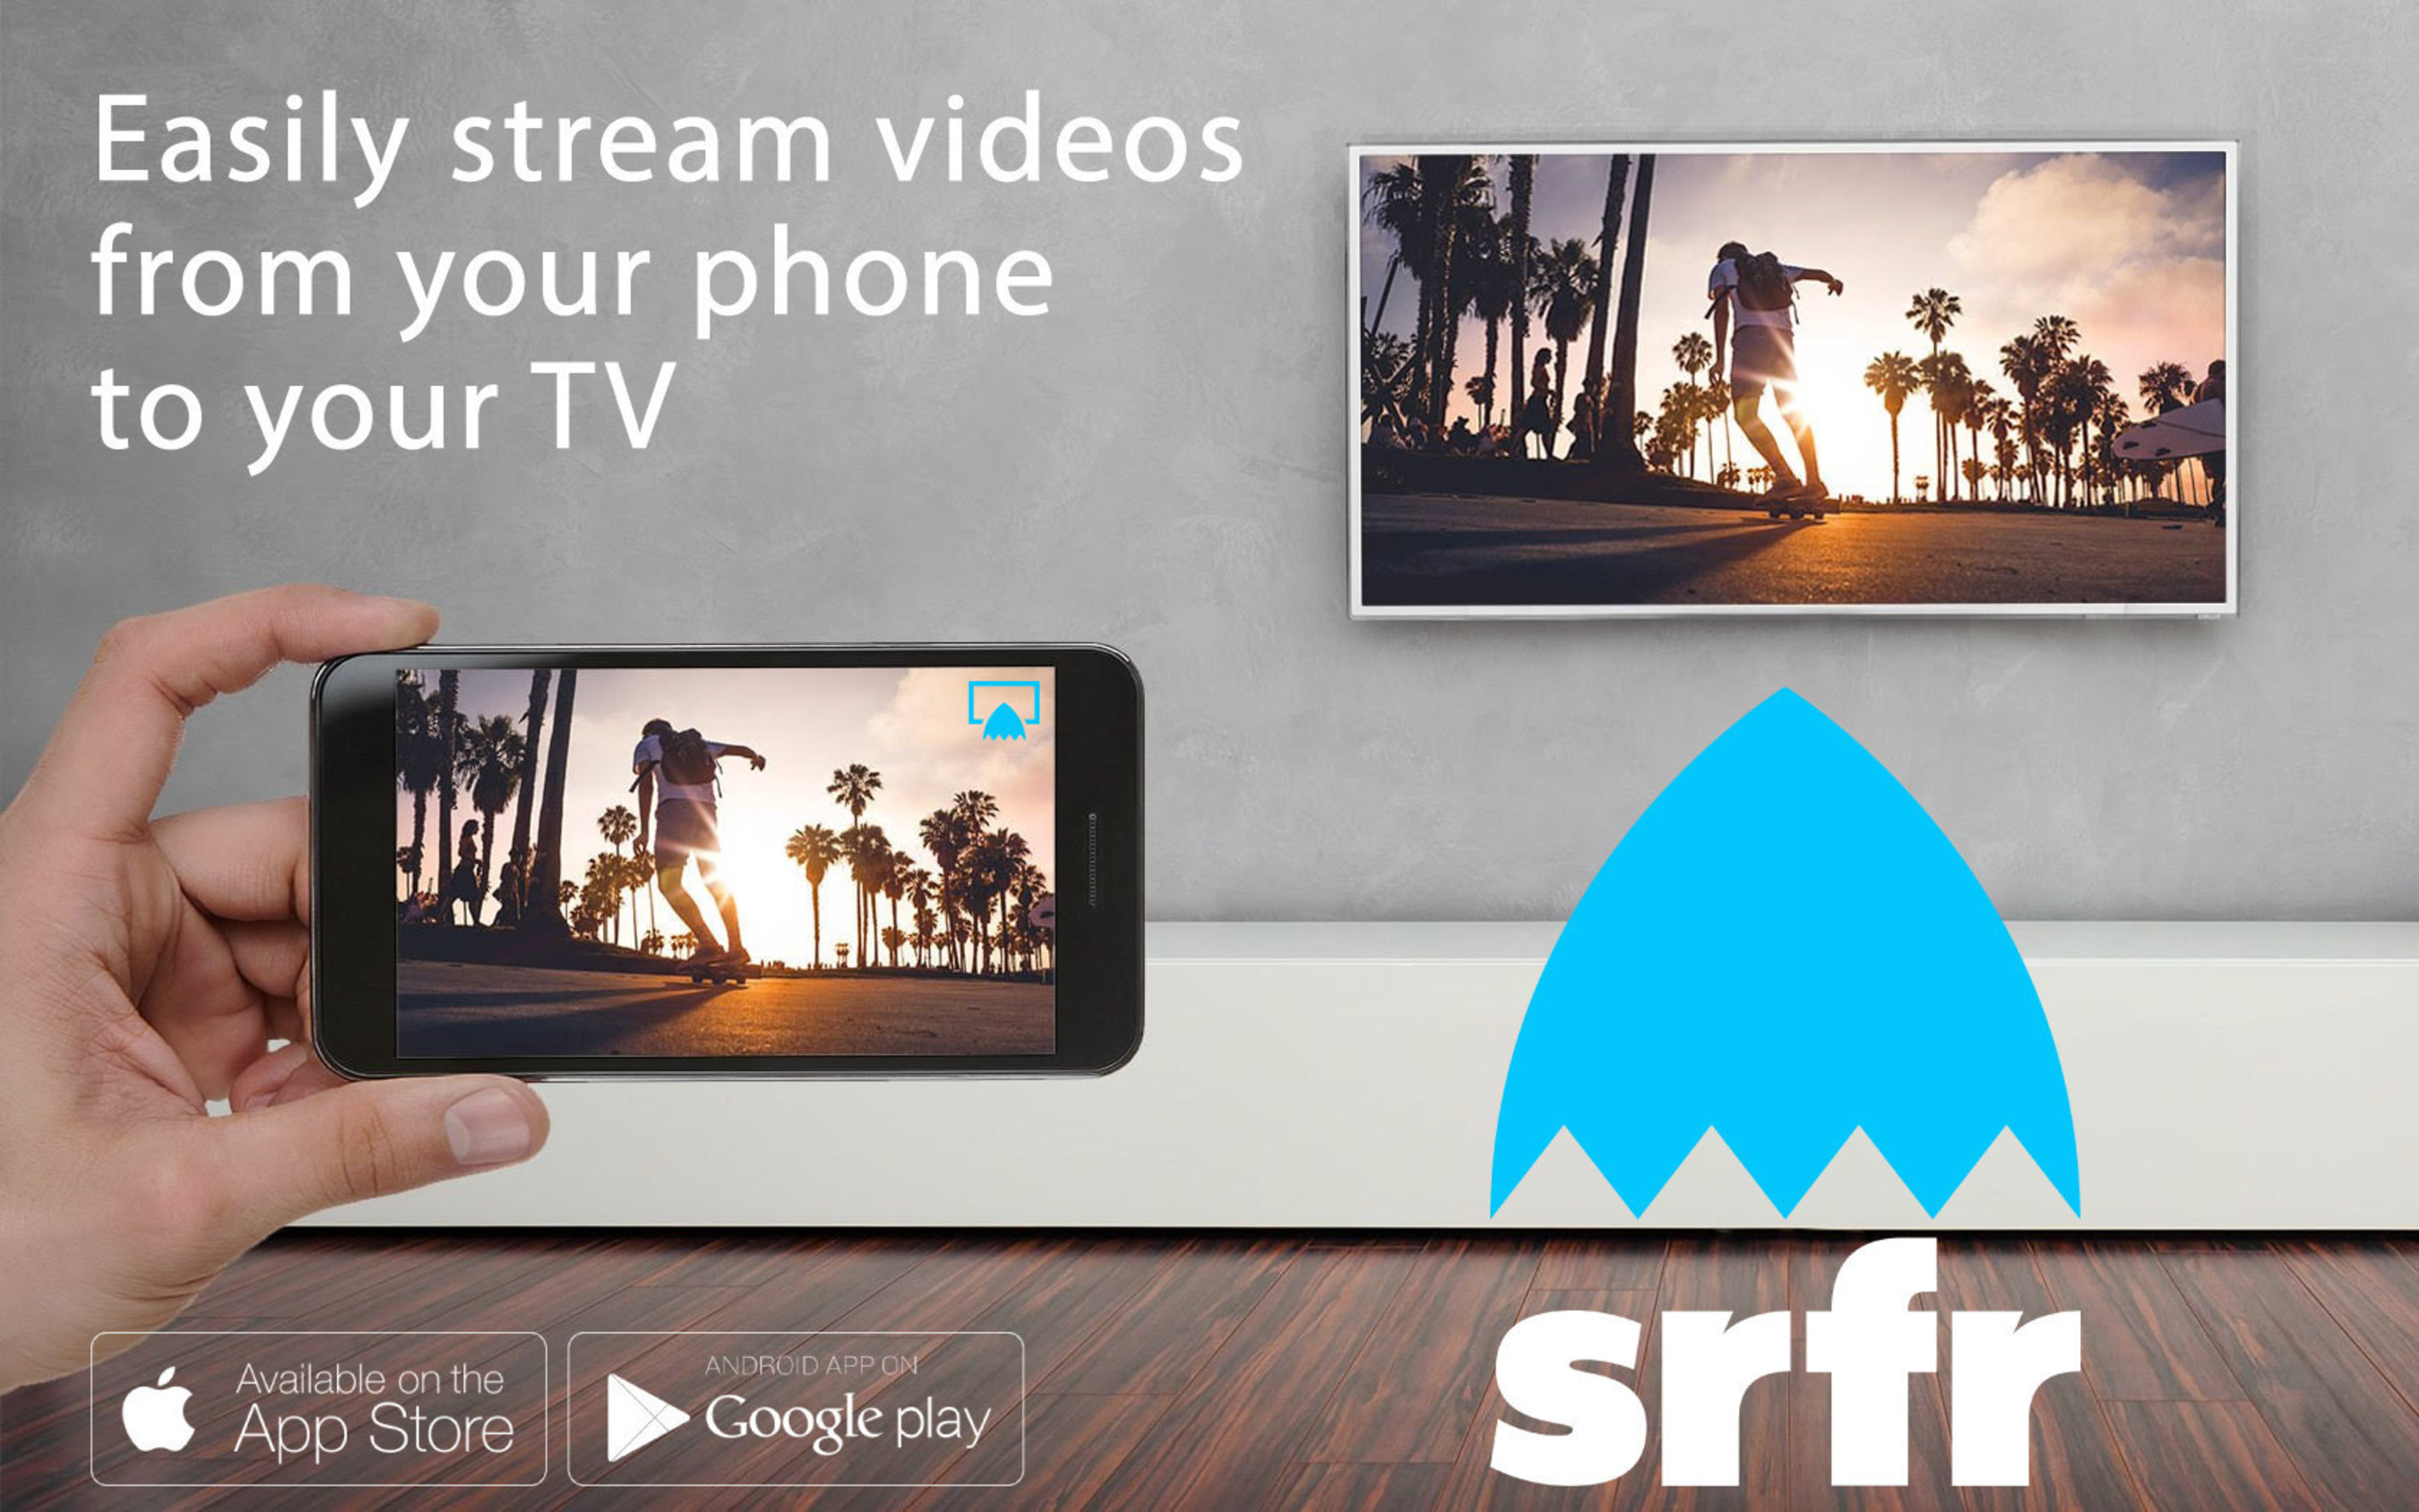 Riding The Wave Of Streaming Video: How The srfr App Is Evolving The Way We Watch TV